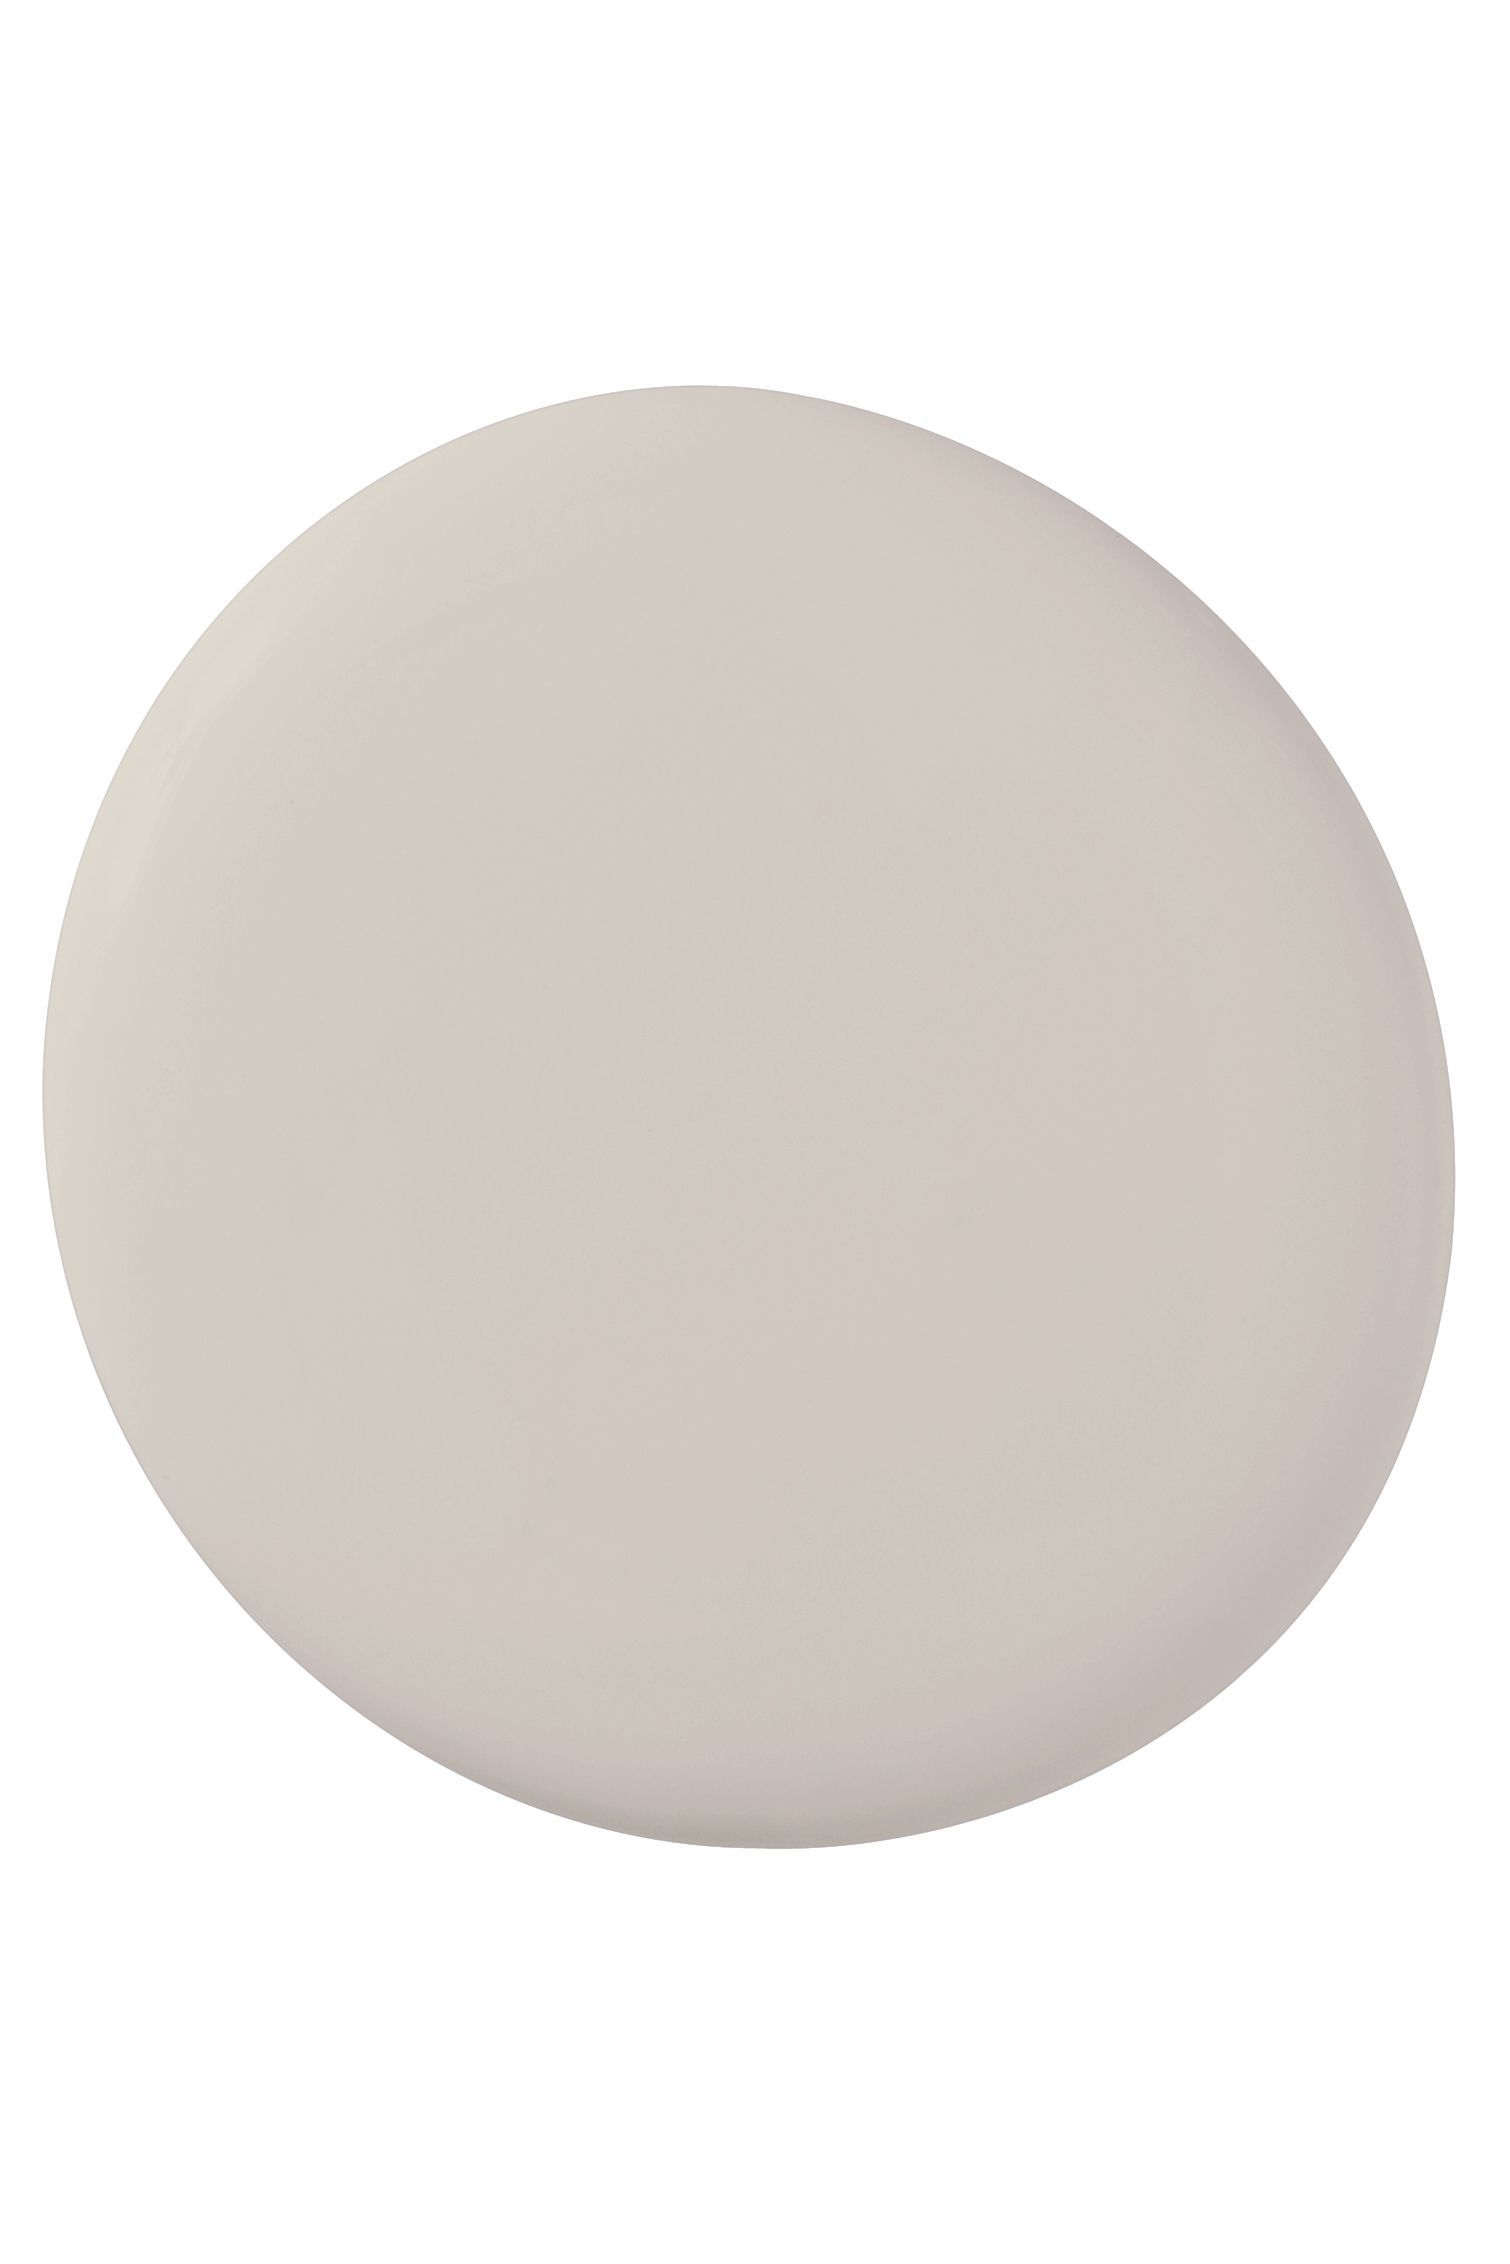 Using This Greige Color In Large Open Es With Turquoise Scarlet Or Tangerine Accents The Warmth Of Gray Comes From Addition A